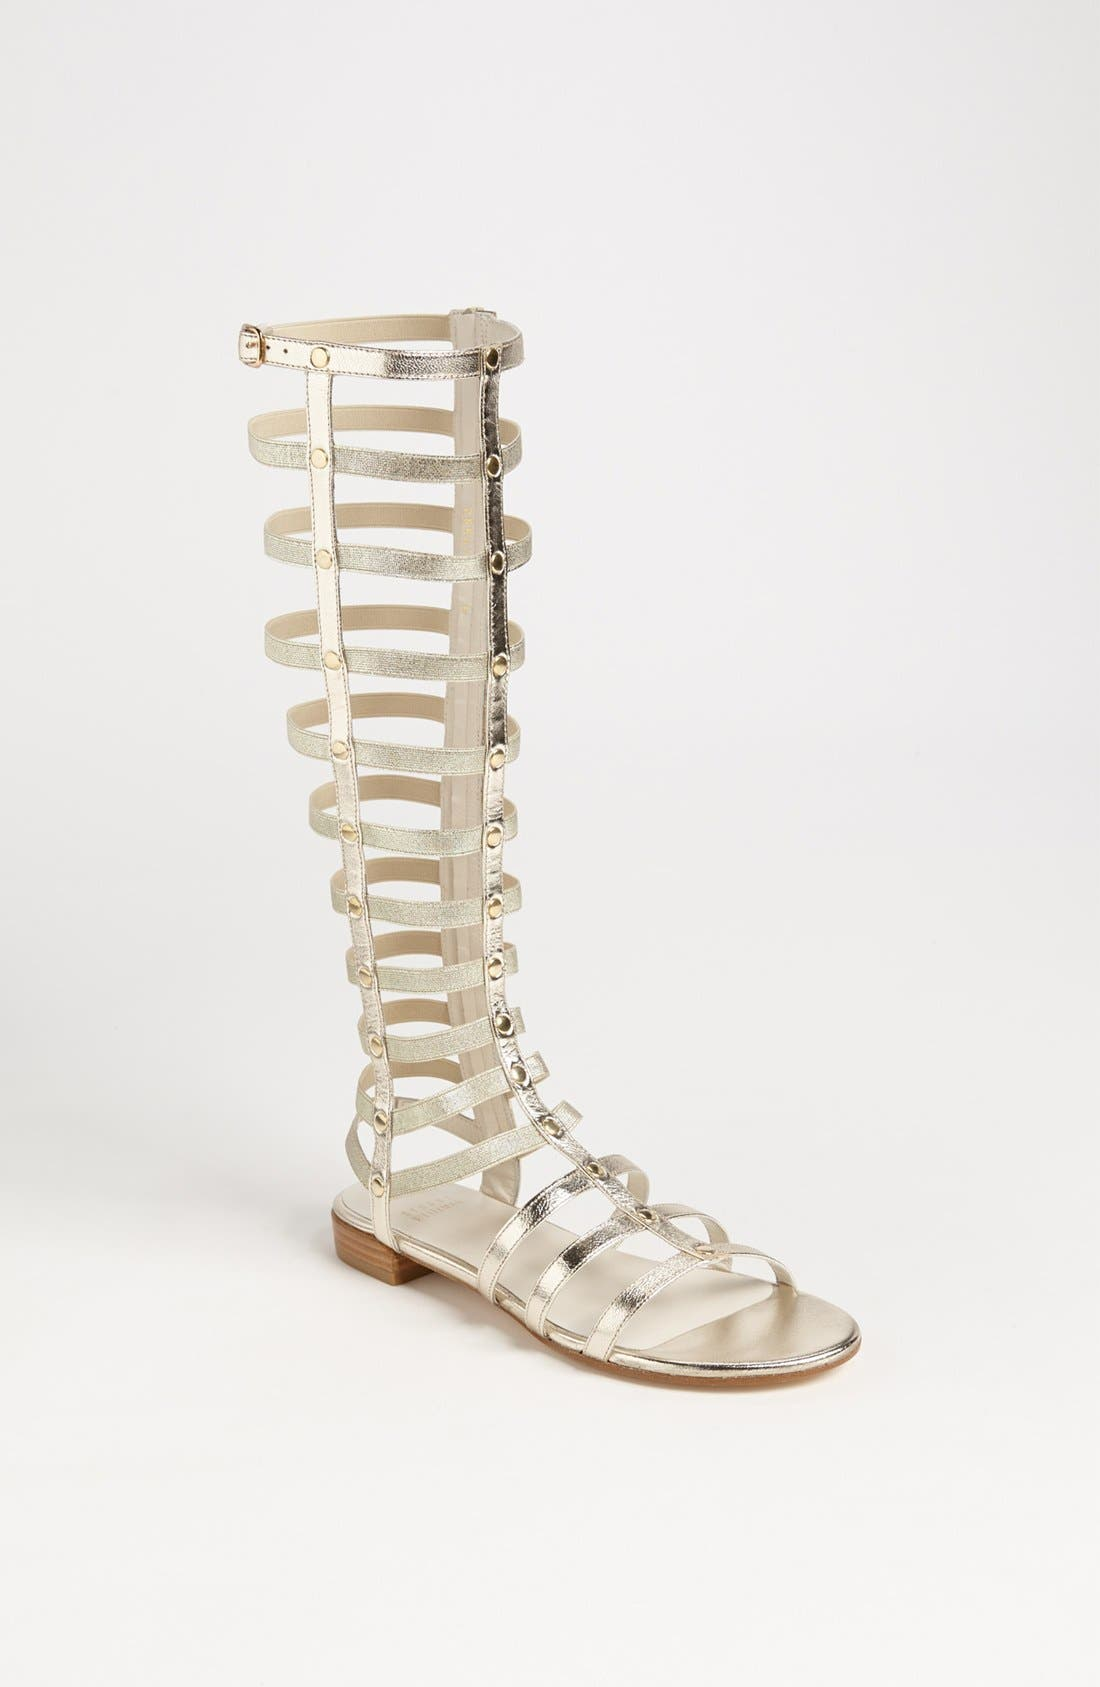 Alternate Image 1 Selected - Stuart Weitzman Gladiator Sandal